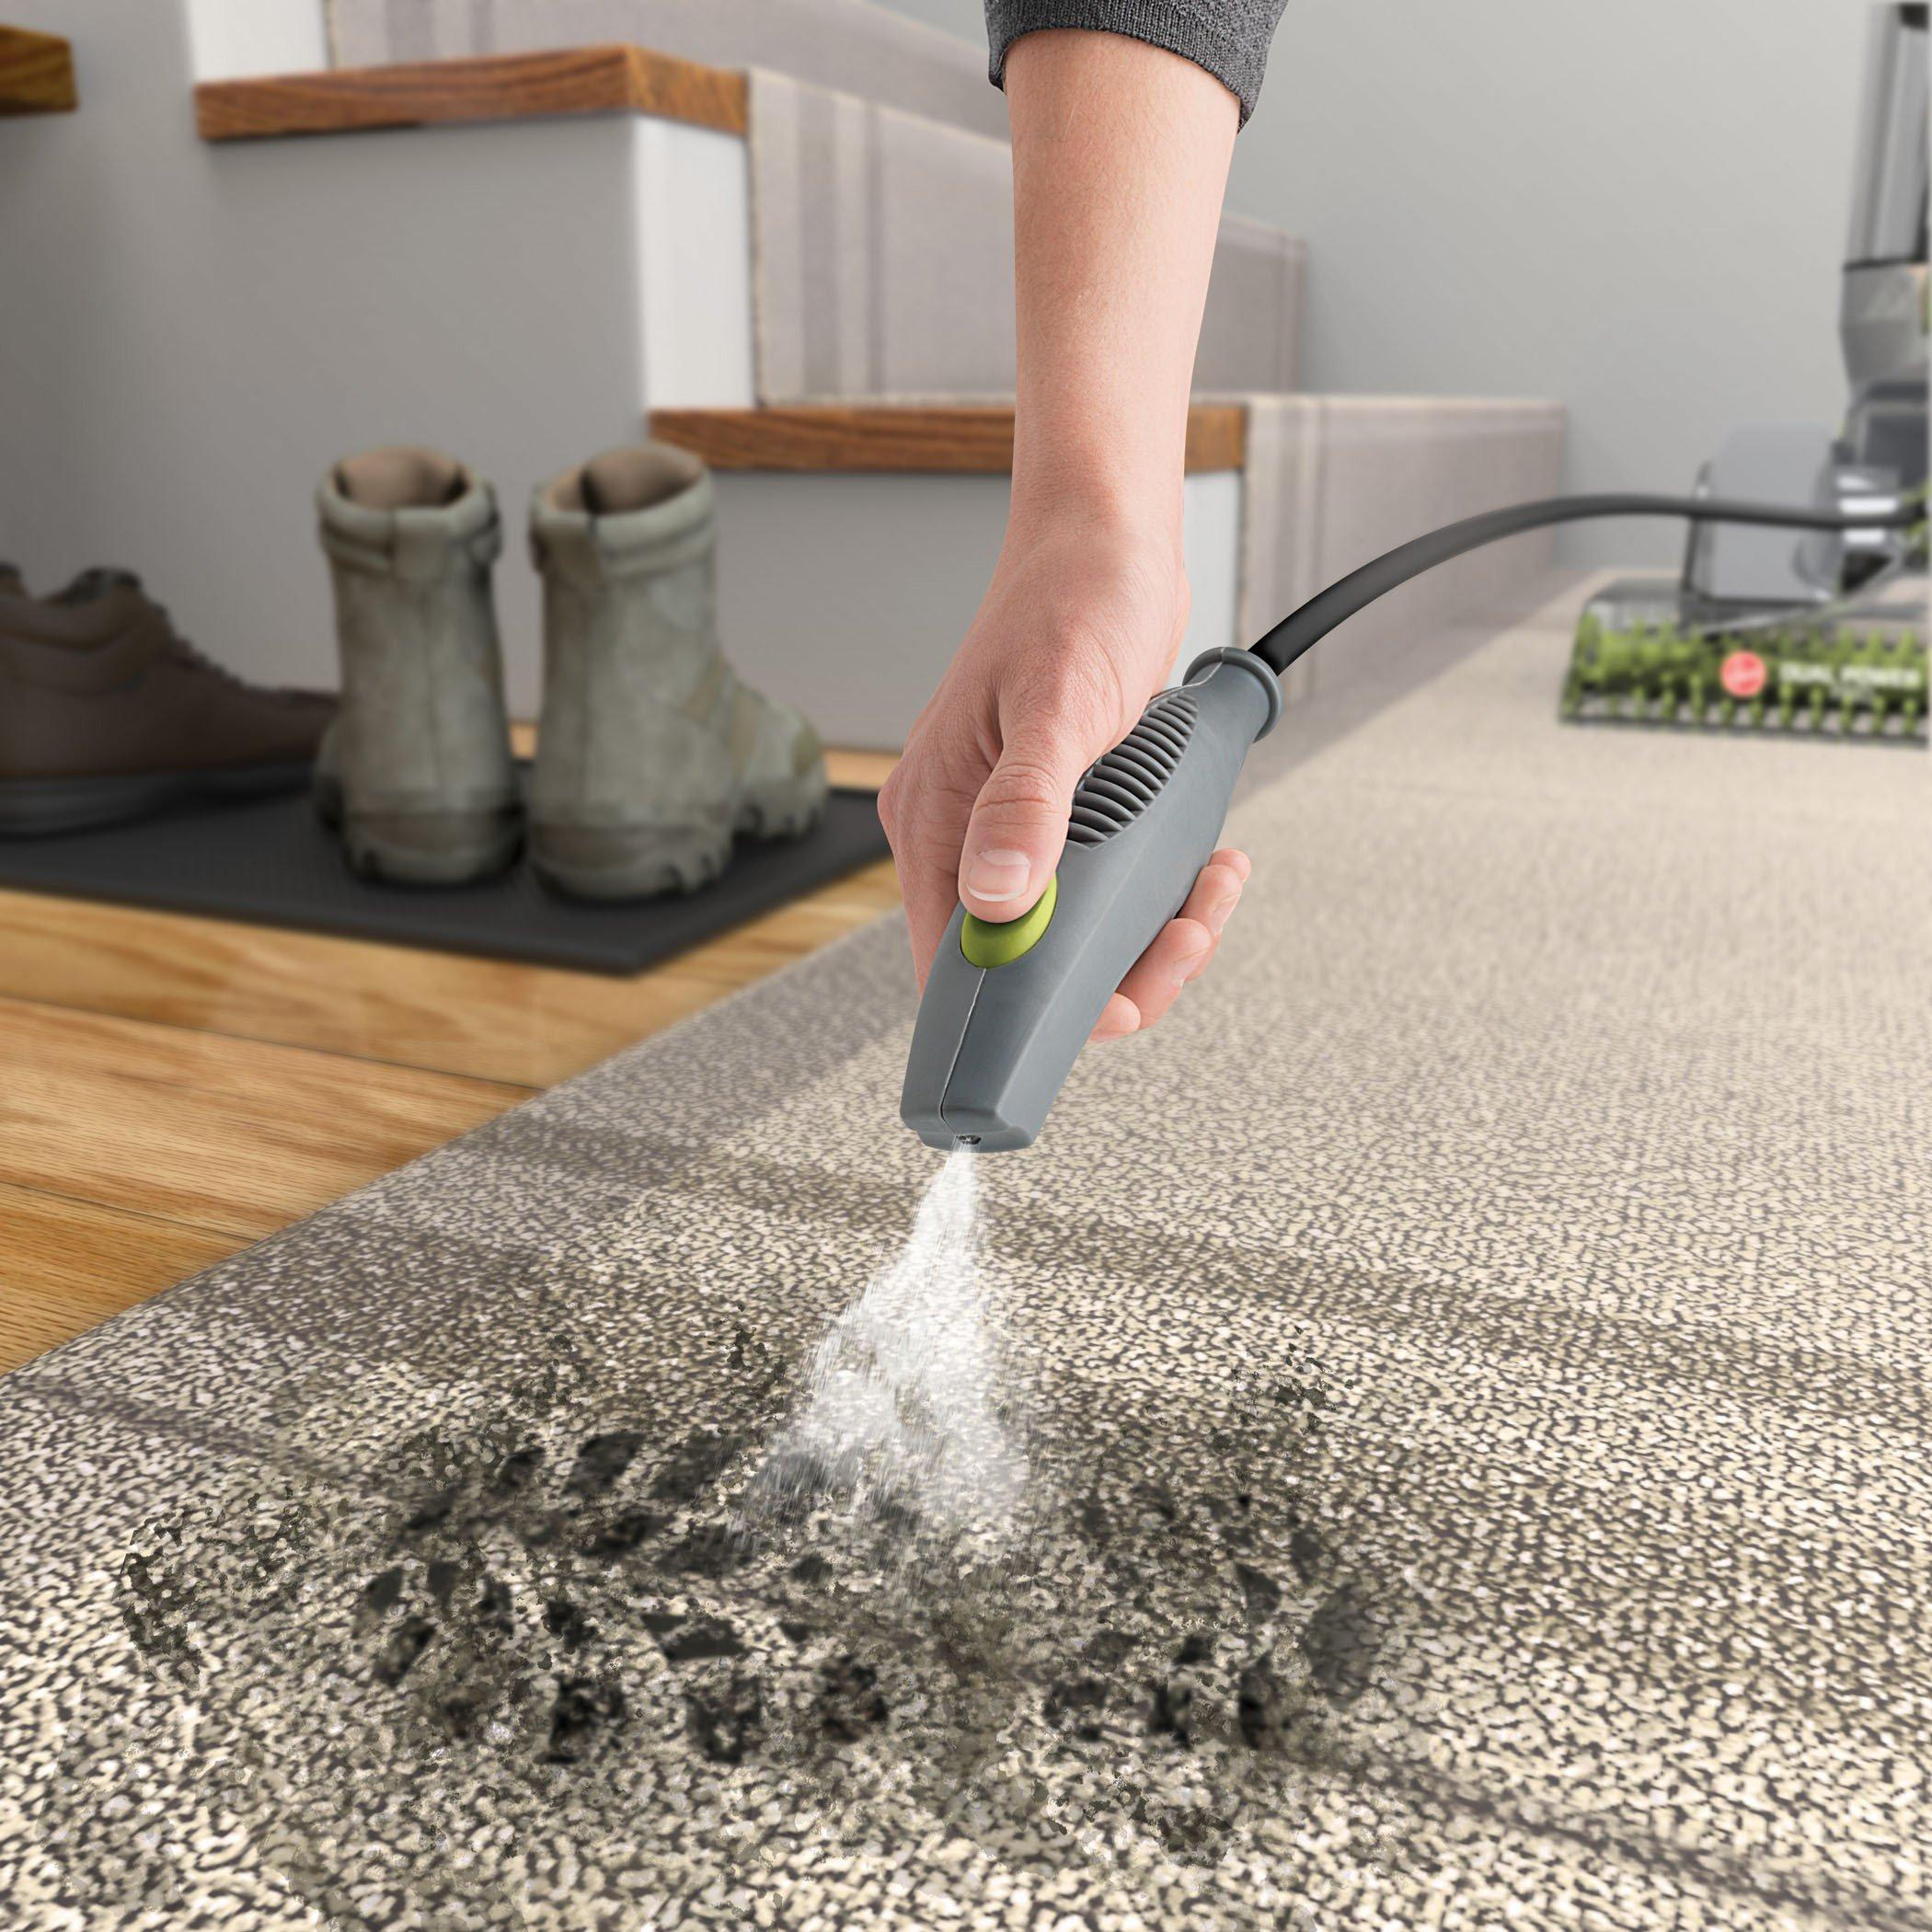 Reconditioned Dual Power Pro Carpet Cleaner4